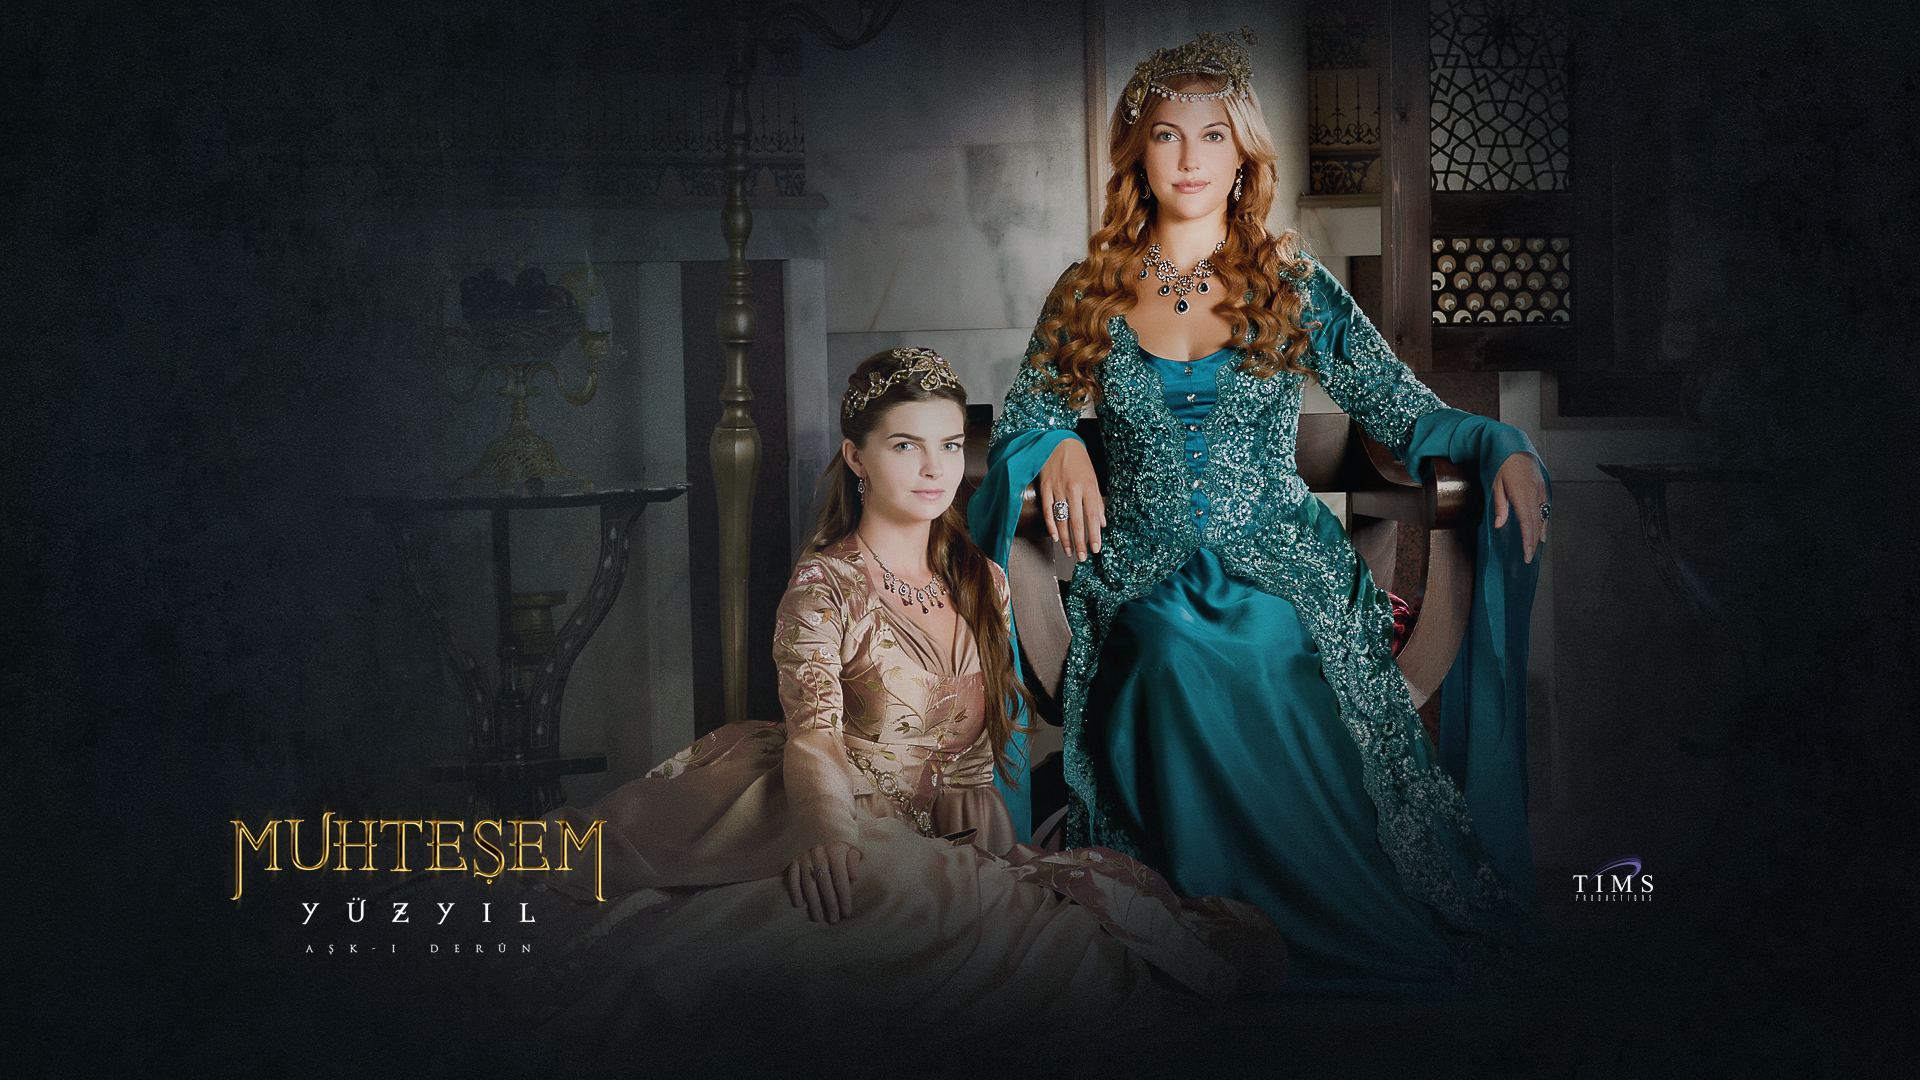 Yüzyil - Magnificent Century Mihrimah Sultana and Hurrem Sultana